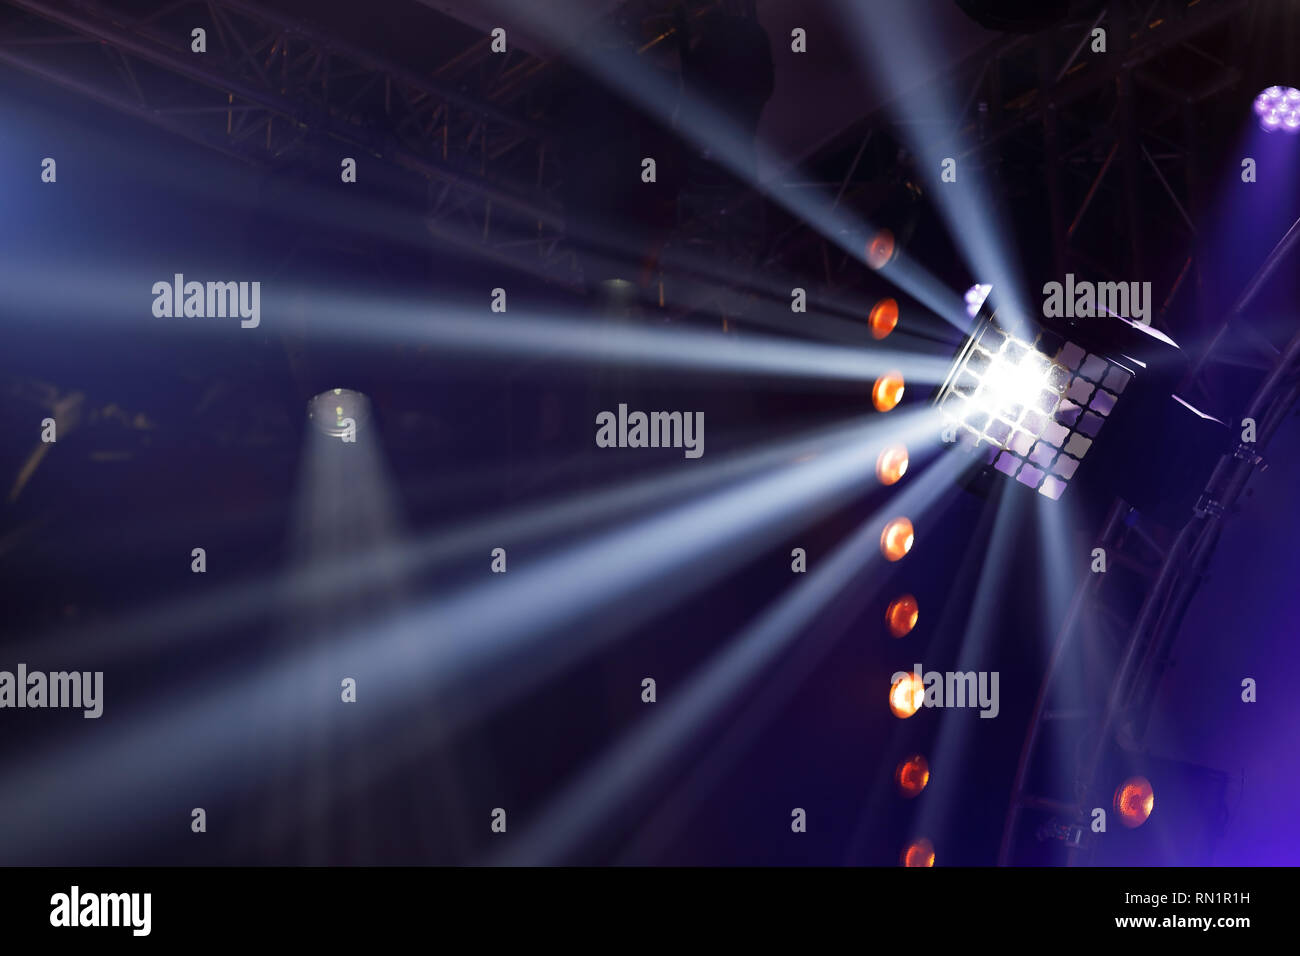 Various types of stage lighting fixtures hanging on the farm. White beams of stage light. - Stock Image